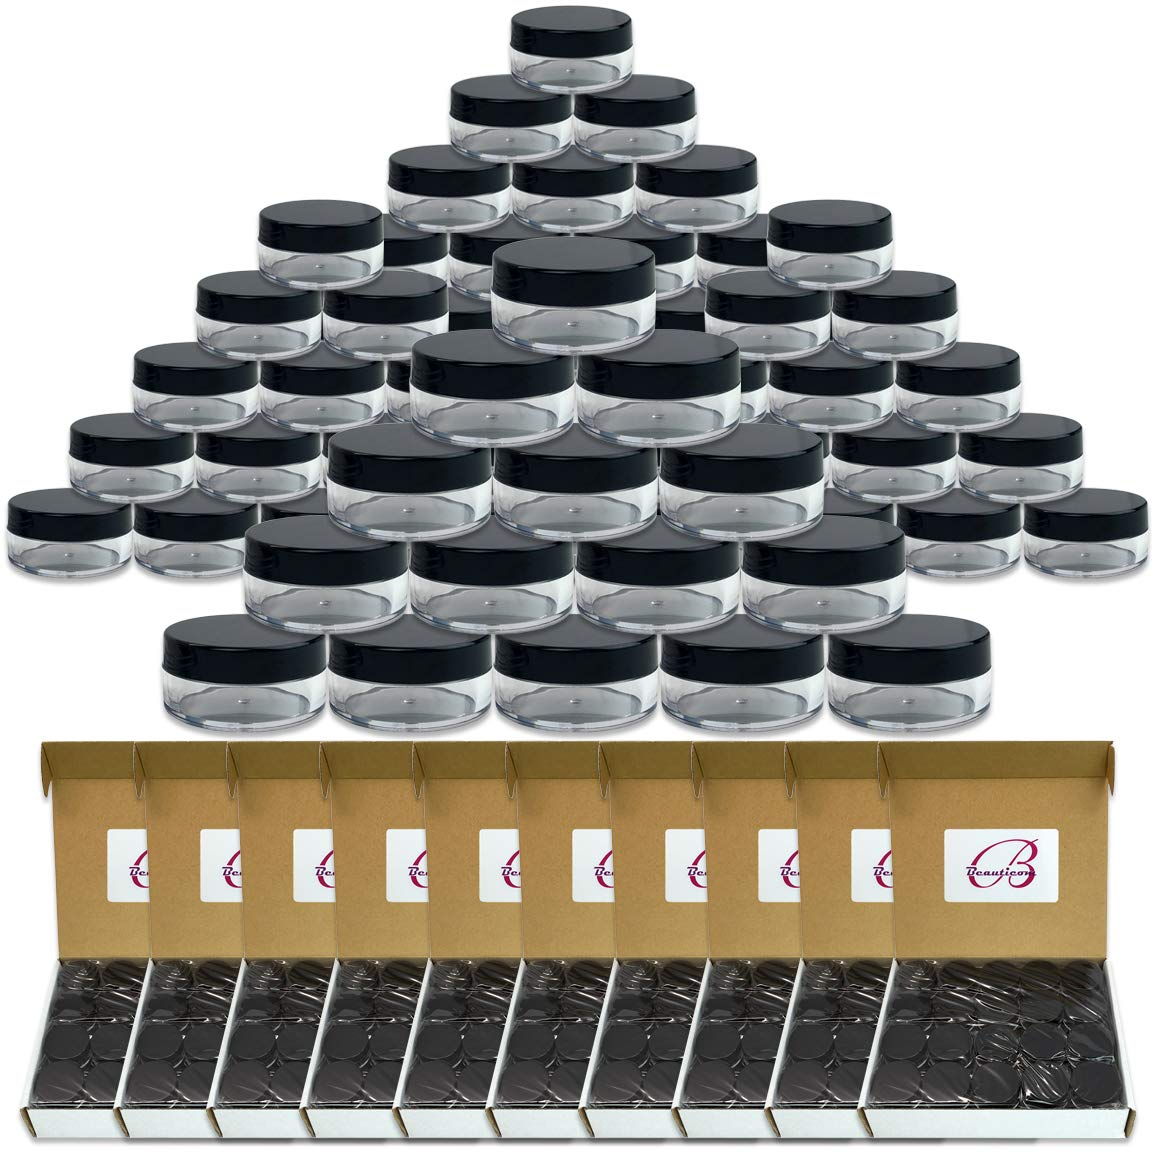 (Quantity: 600 Pieces) Beauticom 10G/10ML Round Clear Jars with Black Lids for Herbs, Spices, Loose Leaf Teas, Coffee and Other Foods - BPA Free